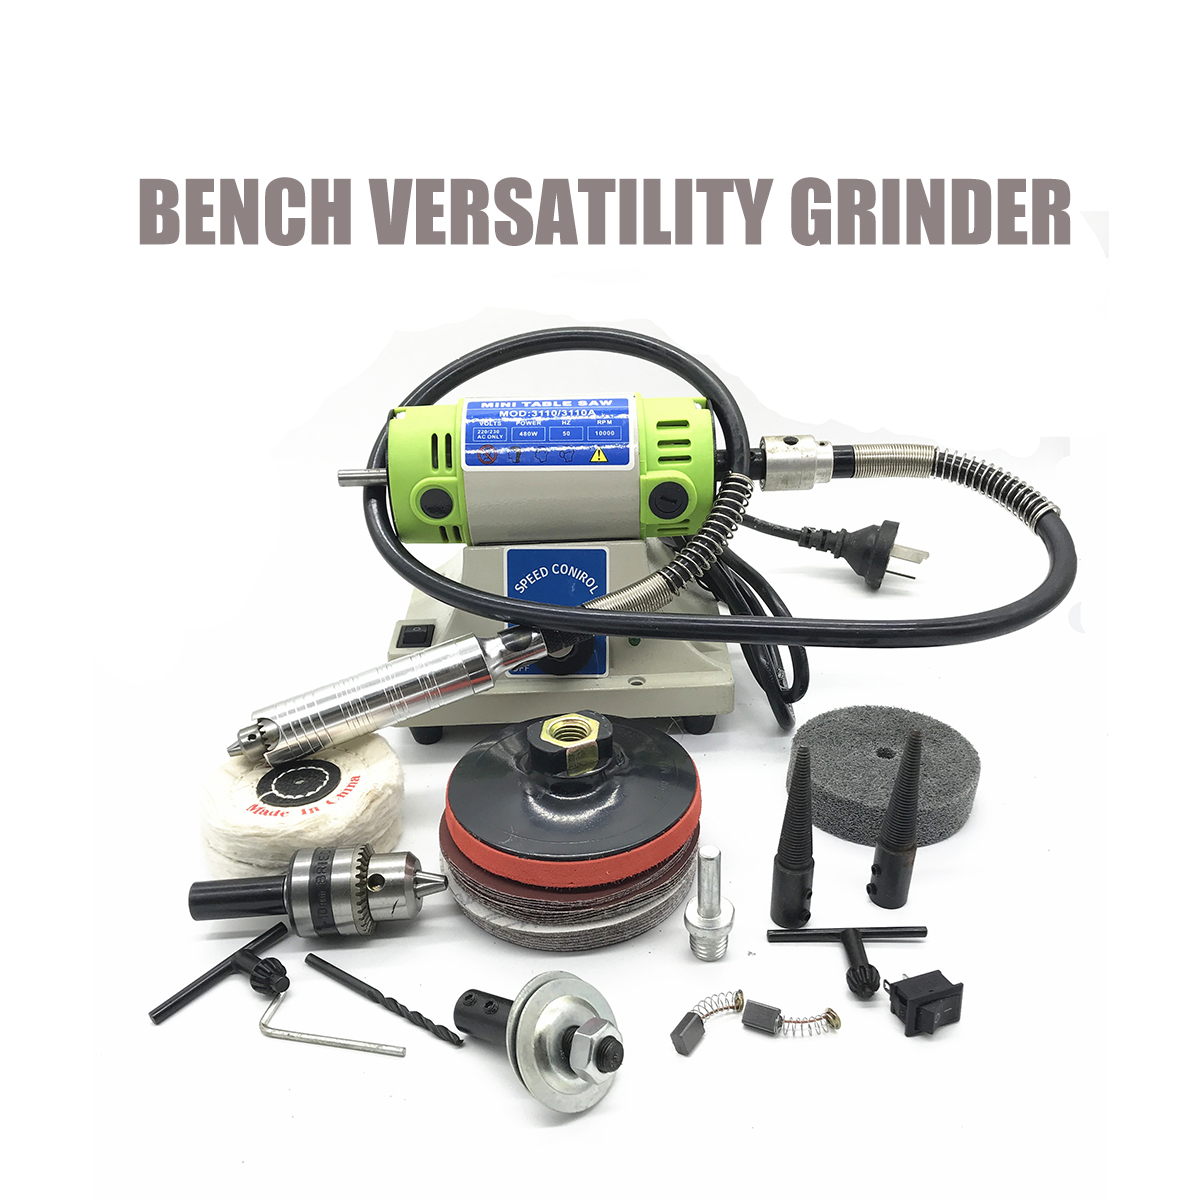 Awesome Us 87 04 20 Off Mini Bench Grinder Electric Versatility Grinding Machine 4Mm Chuck Variable Speed Rotary Tool With Flexible Tube Power Tools In Evergreenethics Interior Chair Design Evergreenethicsorg